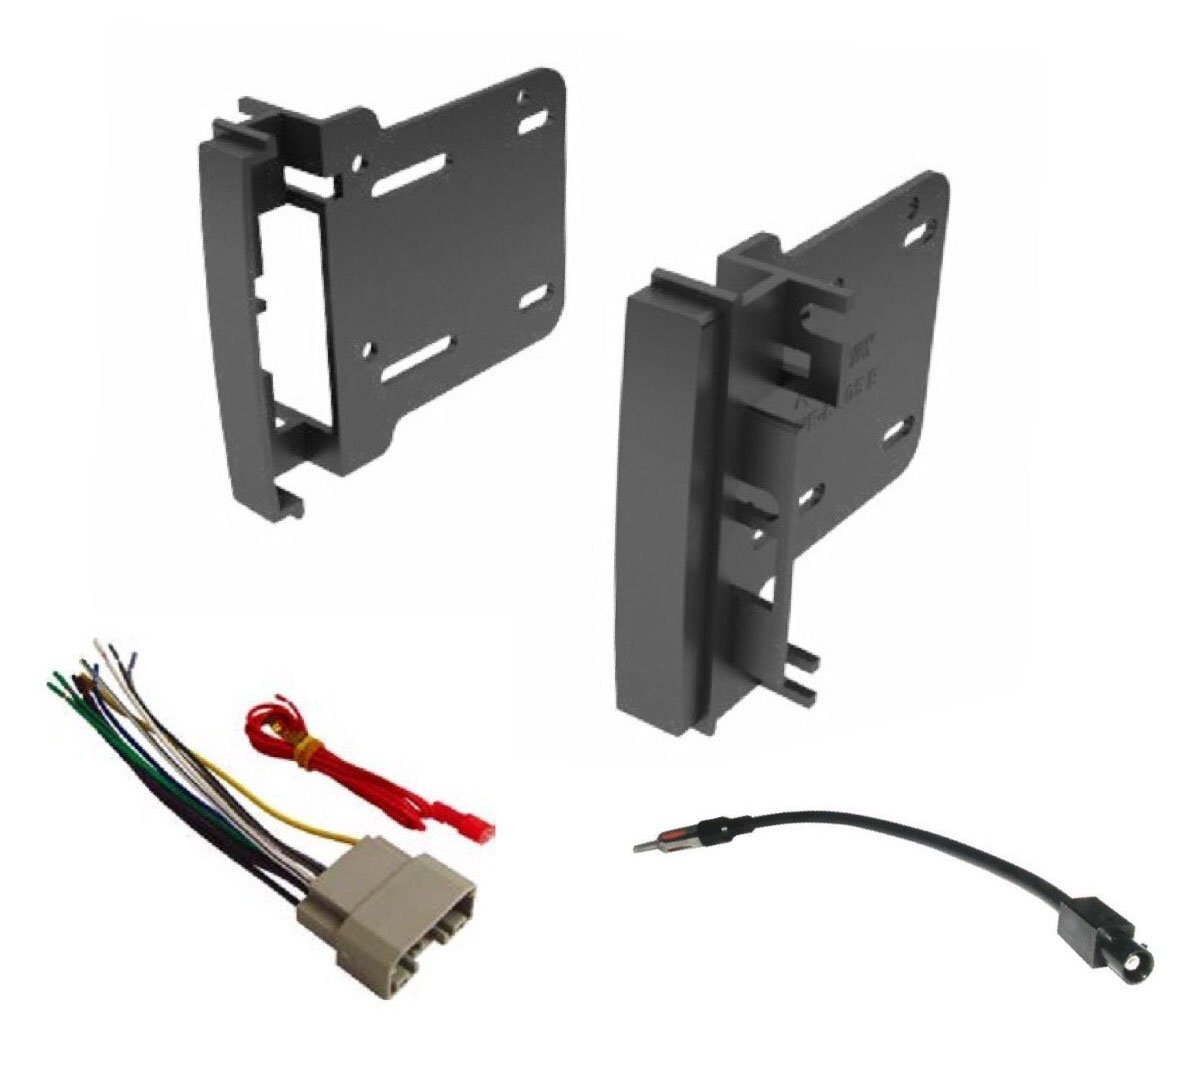 Amazon.com: Car Stereo Radio Install Dash Kit, Wire Harness, and Antenna  Adapter to Add a Double Din Radio for 2007-2016 Chrysler Dodge Jeep: Car ...